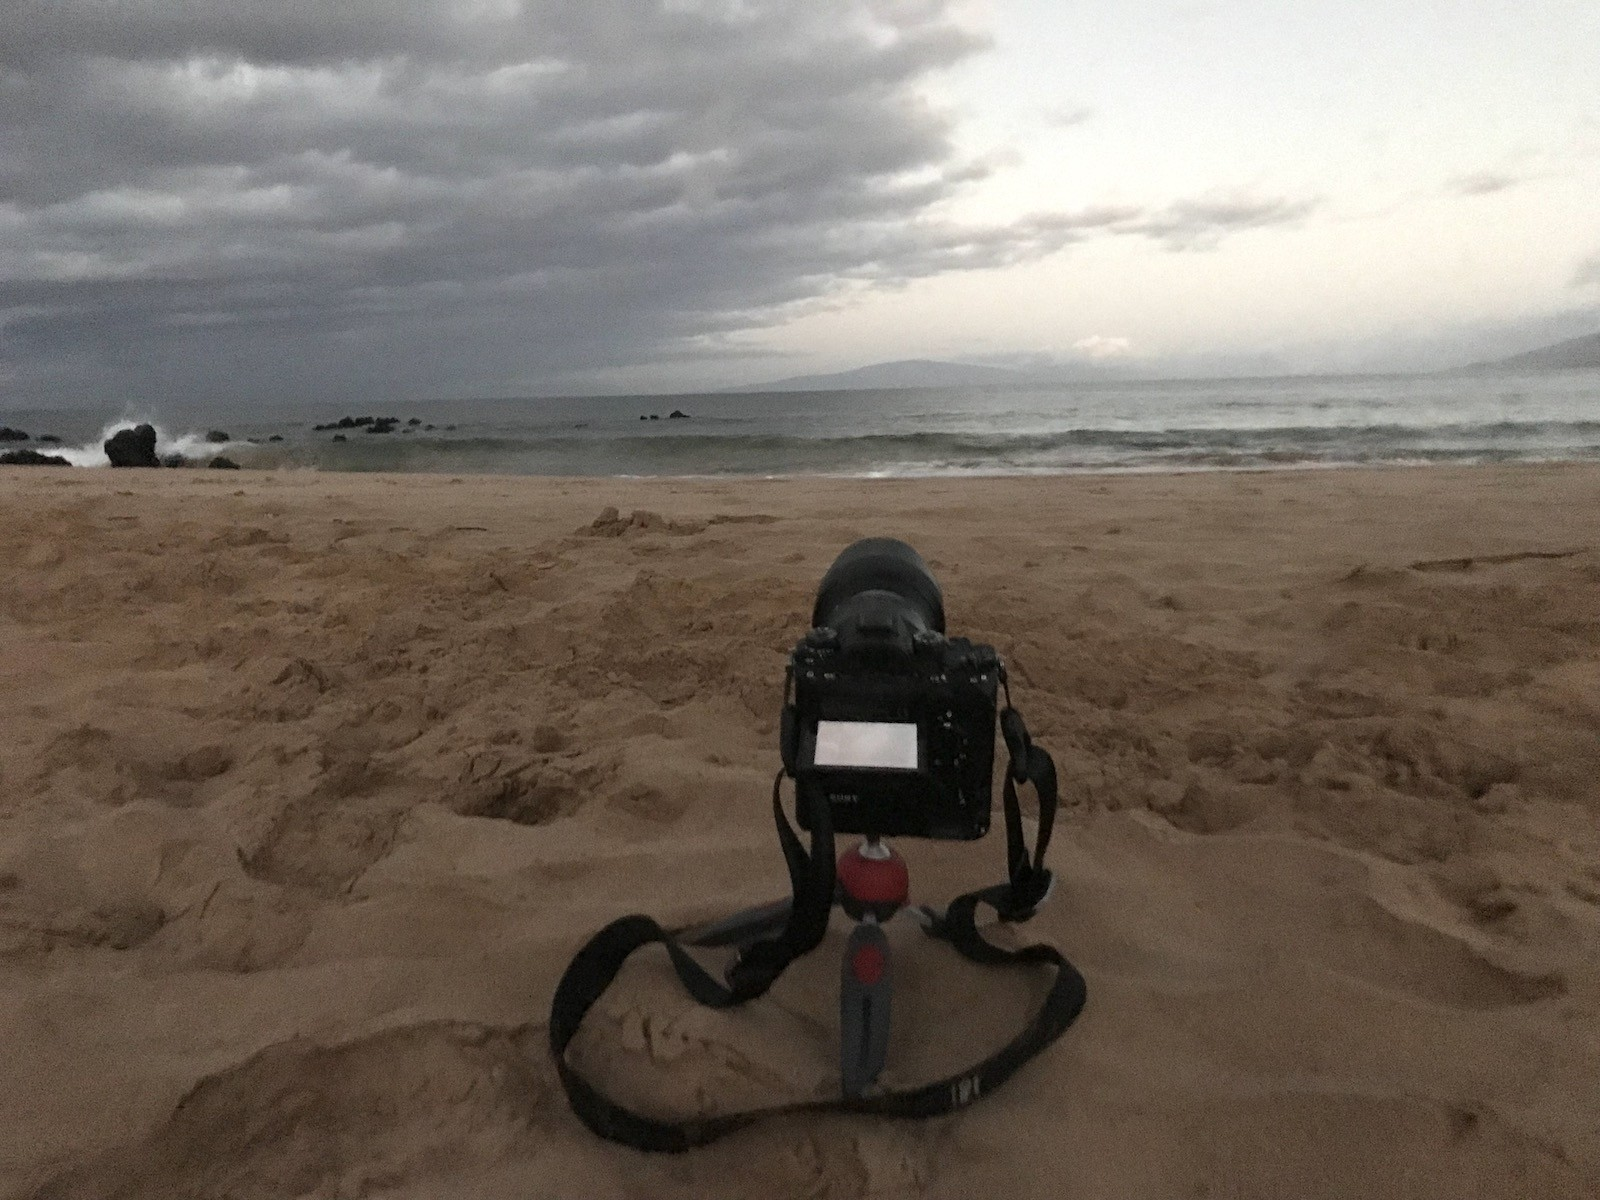 The beach setup—not shown is the sneaker wave that rushed on shore and I backflipped with the camera to avoid it. Here's video of the same scene.